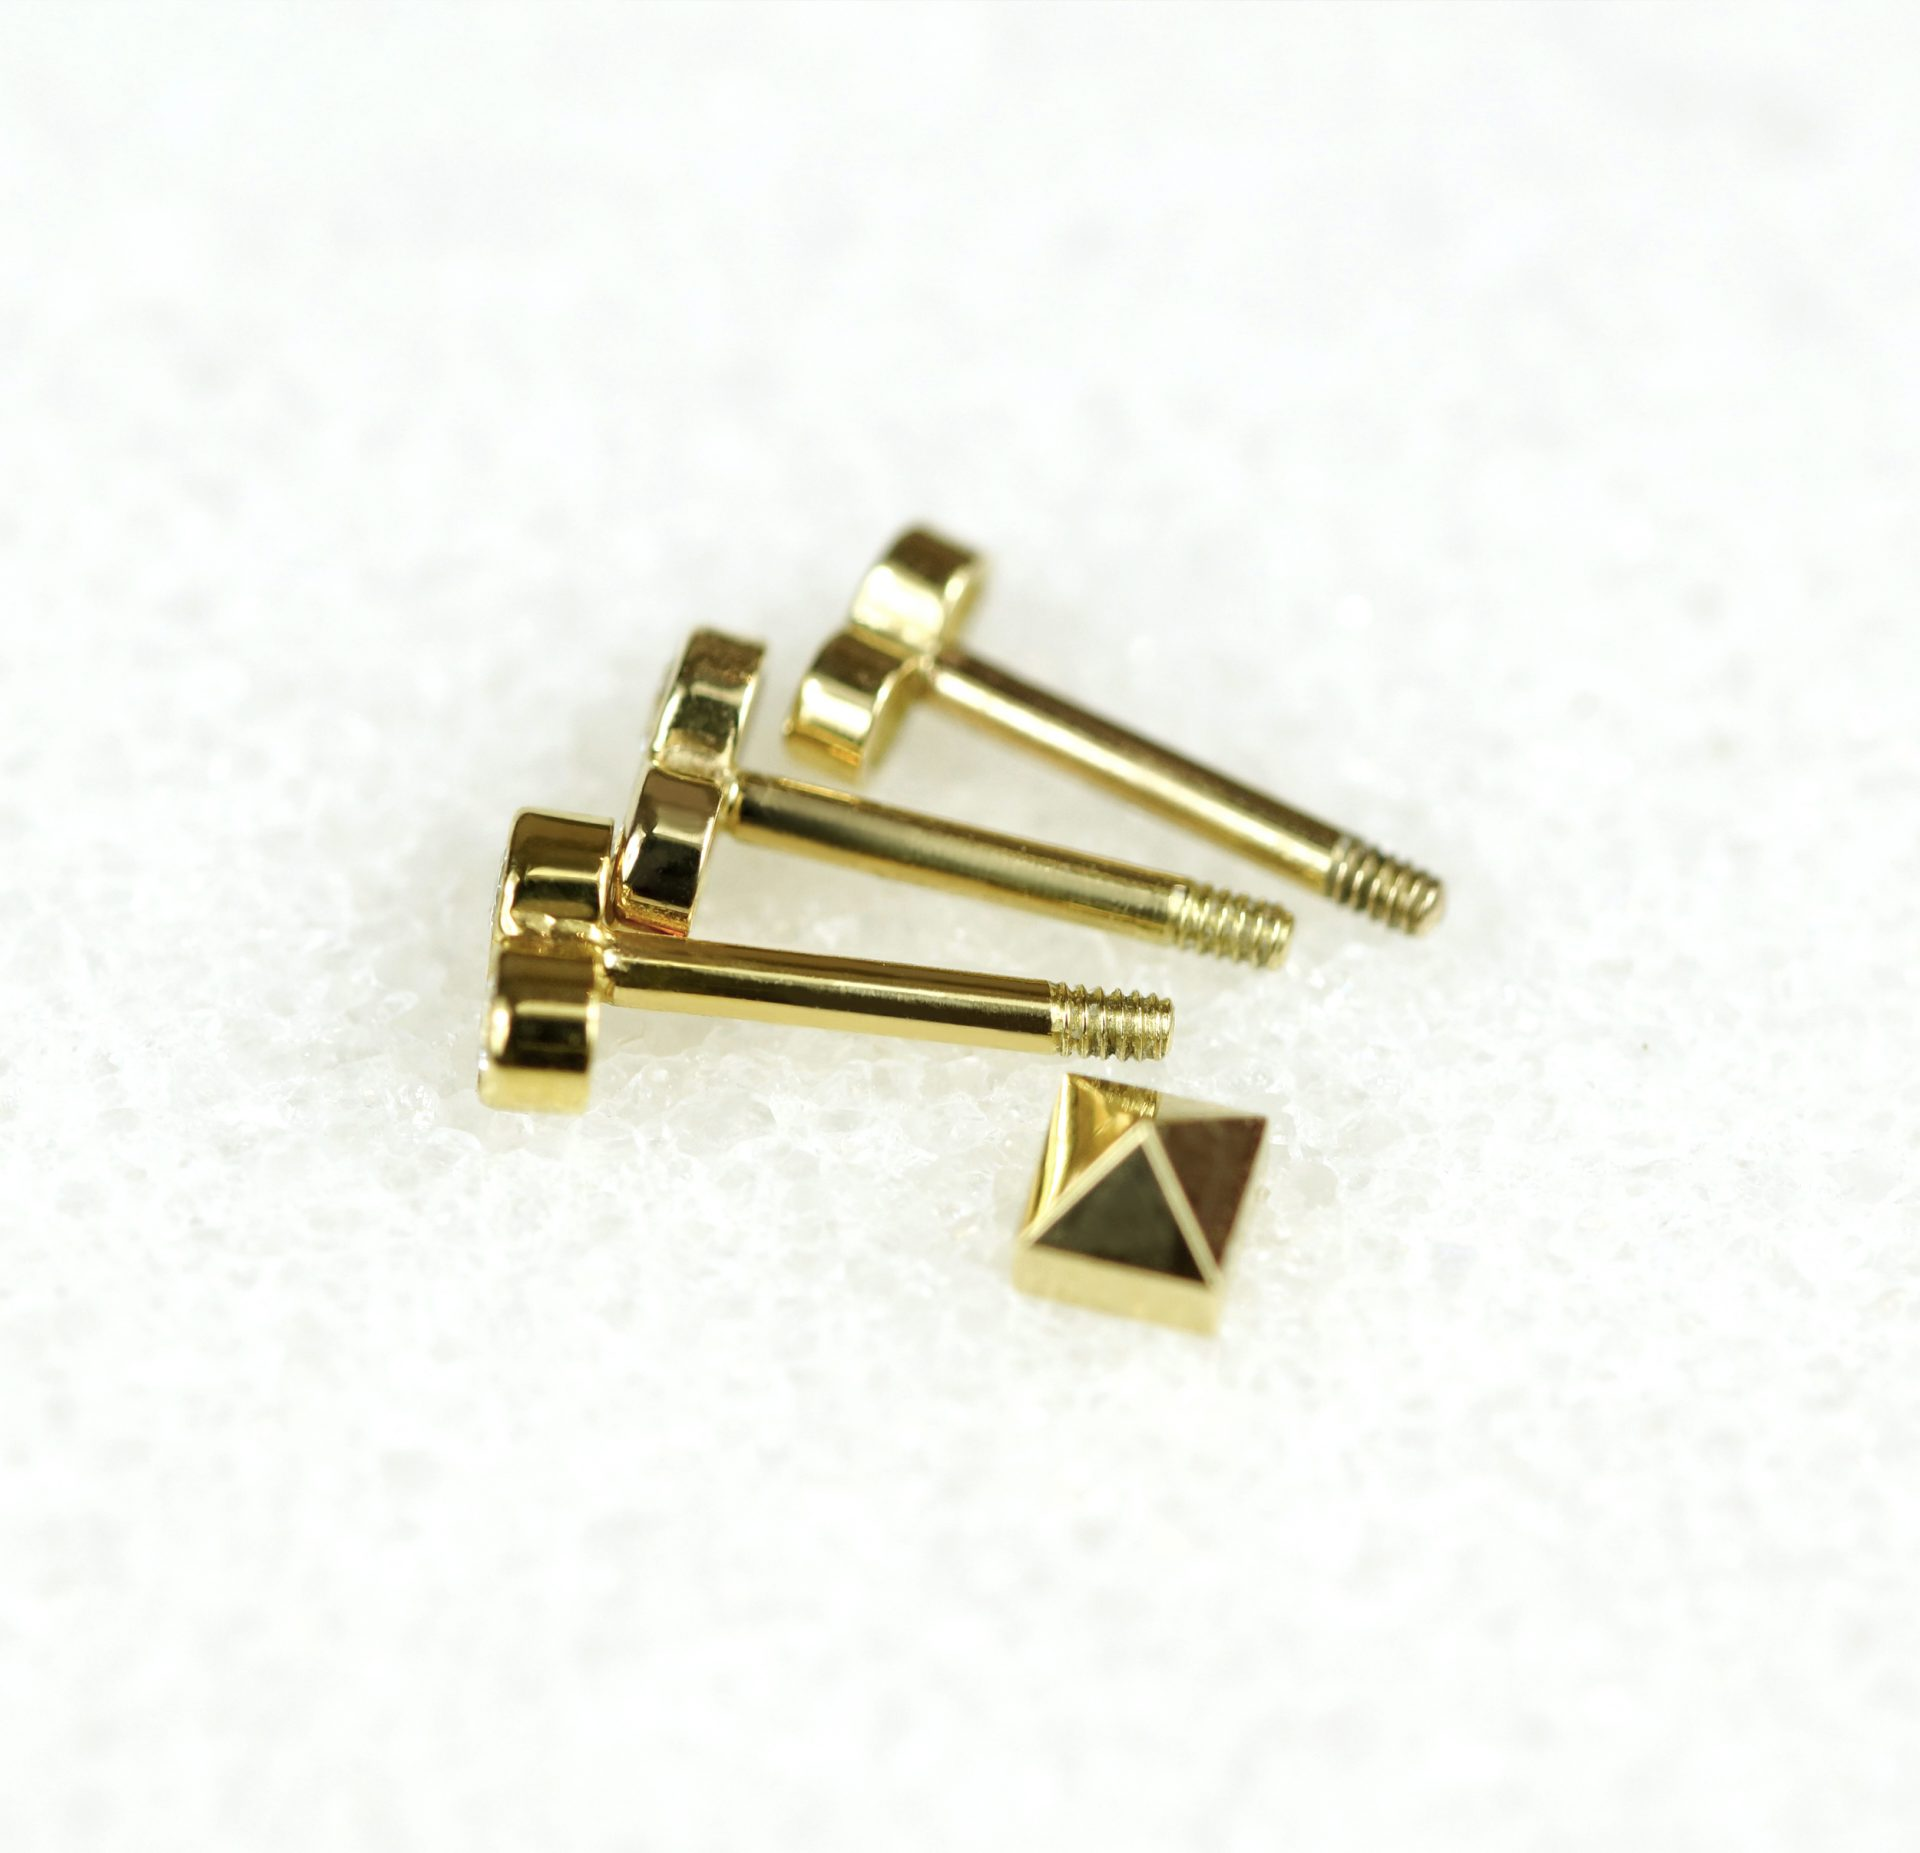 curated-ear-how-to-wear-piercing-diamond-piercing-studs-fasion-gold-buy-online-lena-cohen-uk